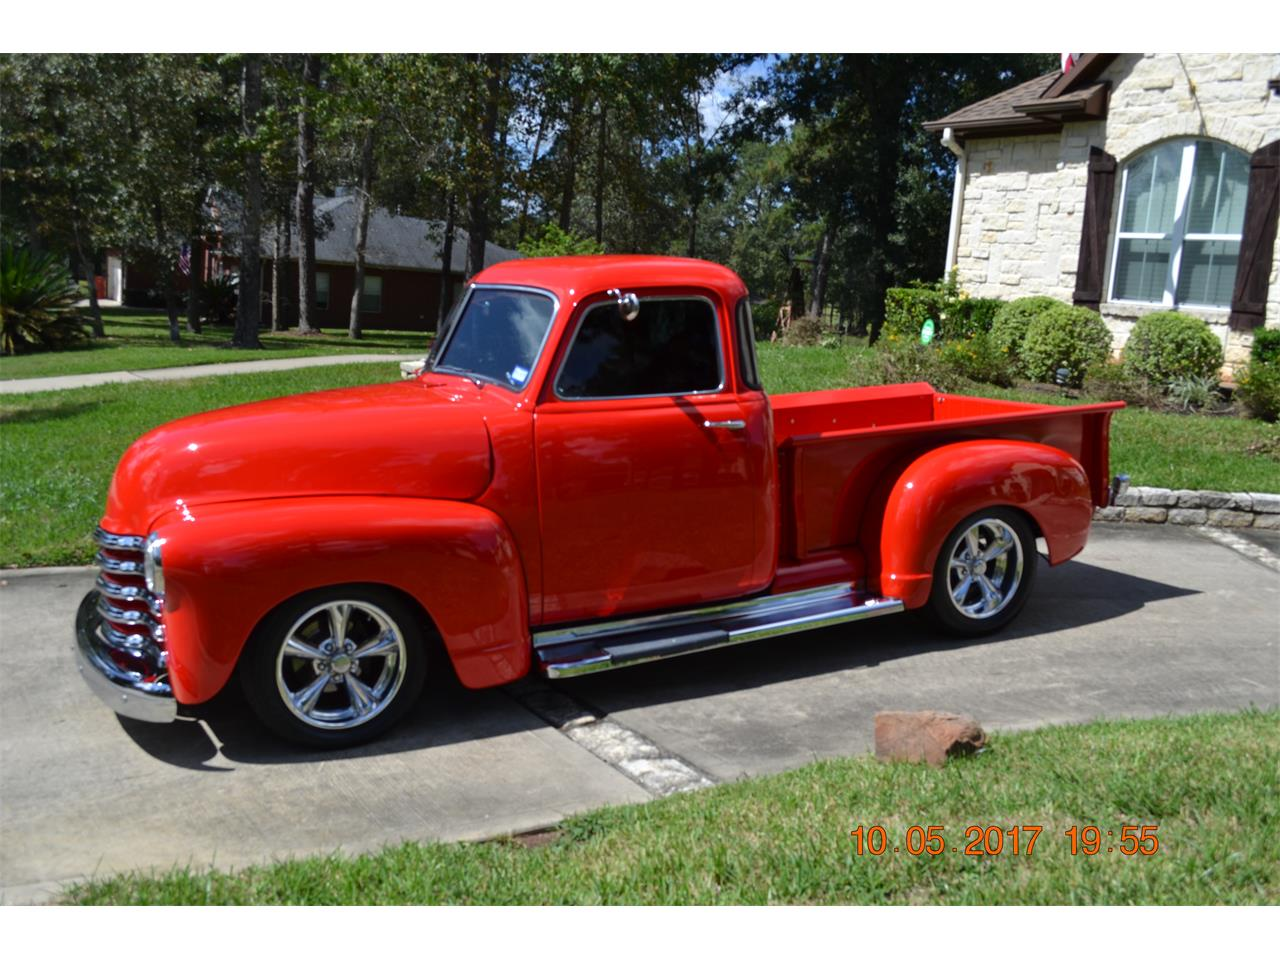 1950 chevrolet pickup for sale | classiccars | cc-1150656